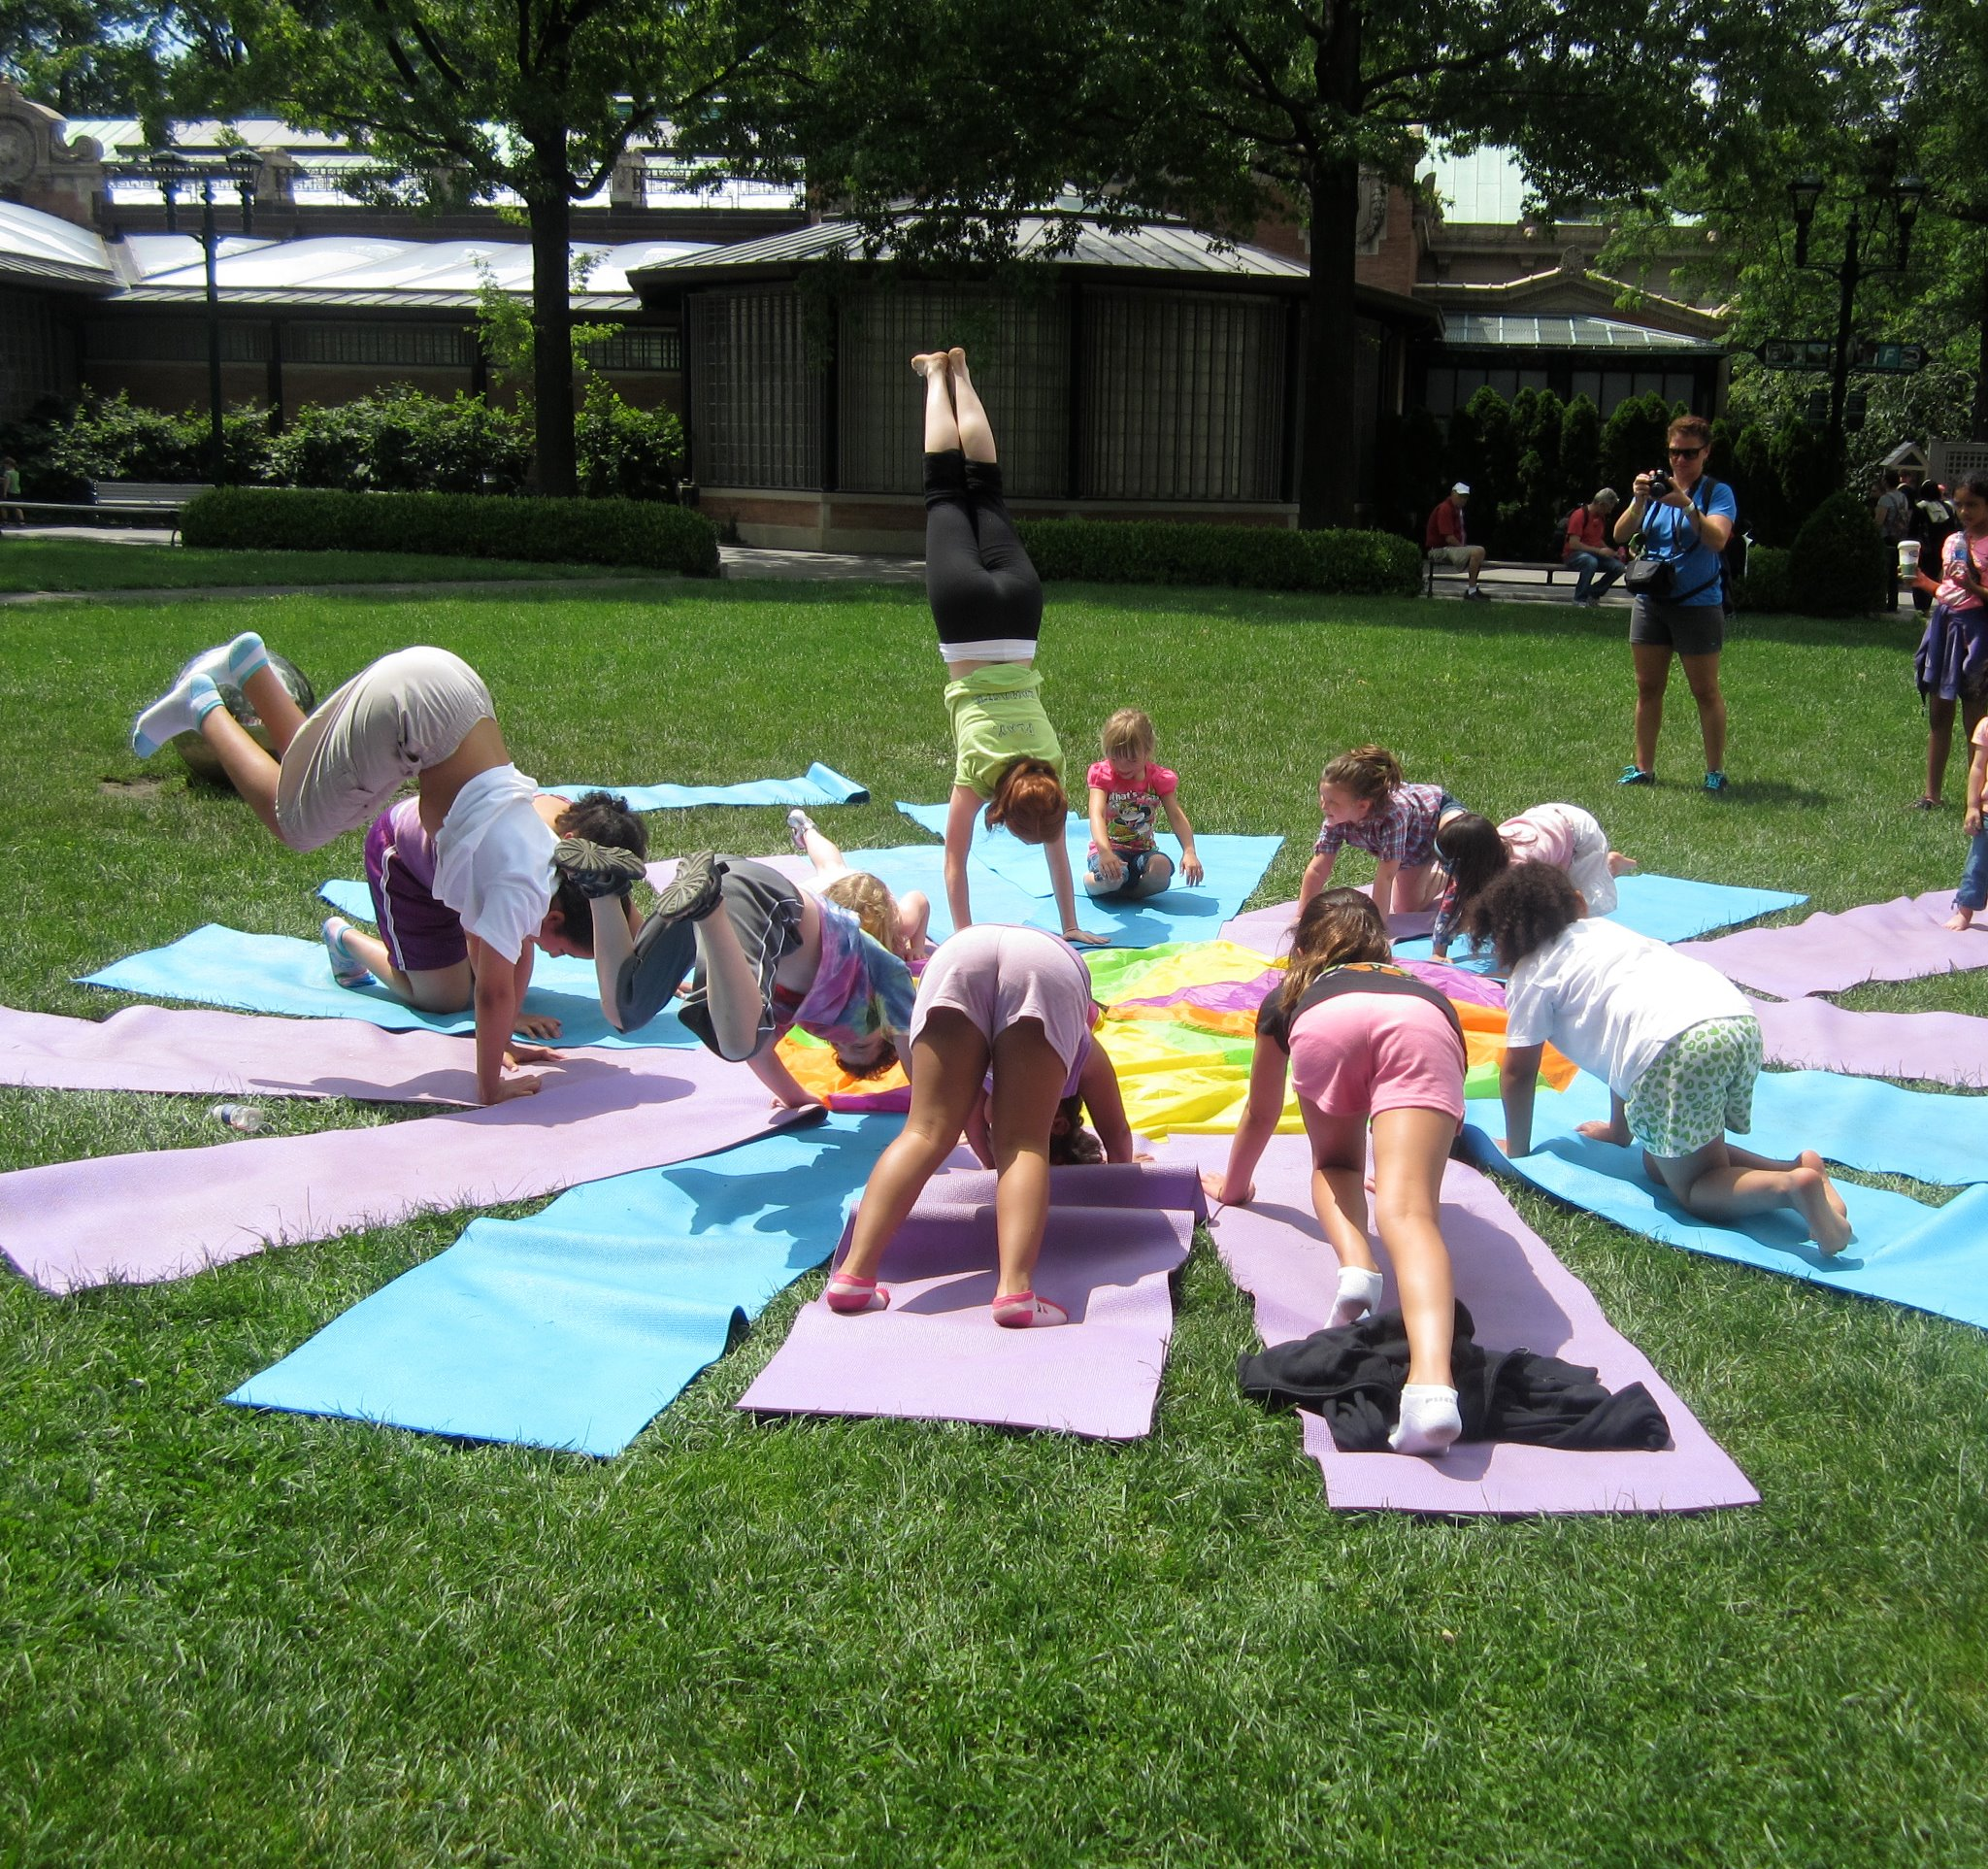 lil yogi u0026 39 s nyc releases summer schedule for 2013 of